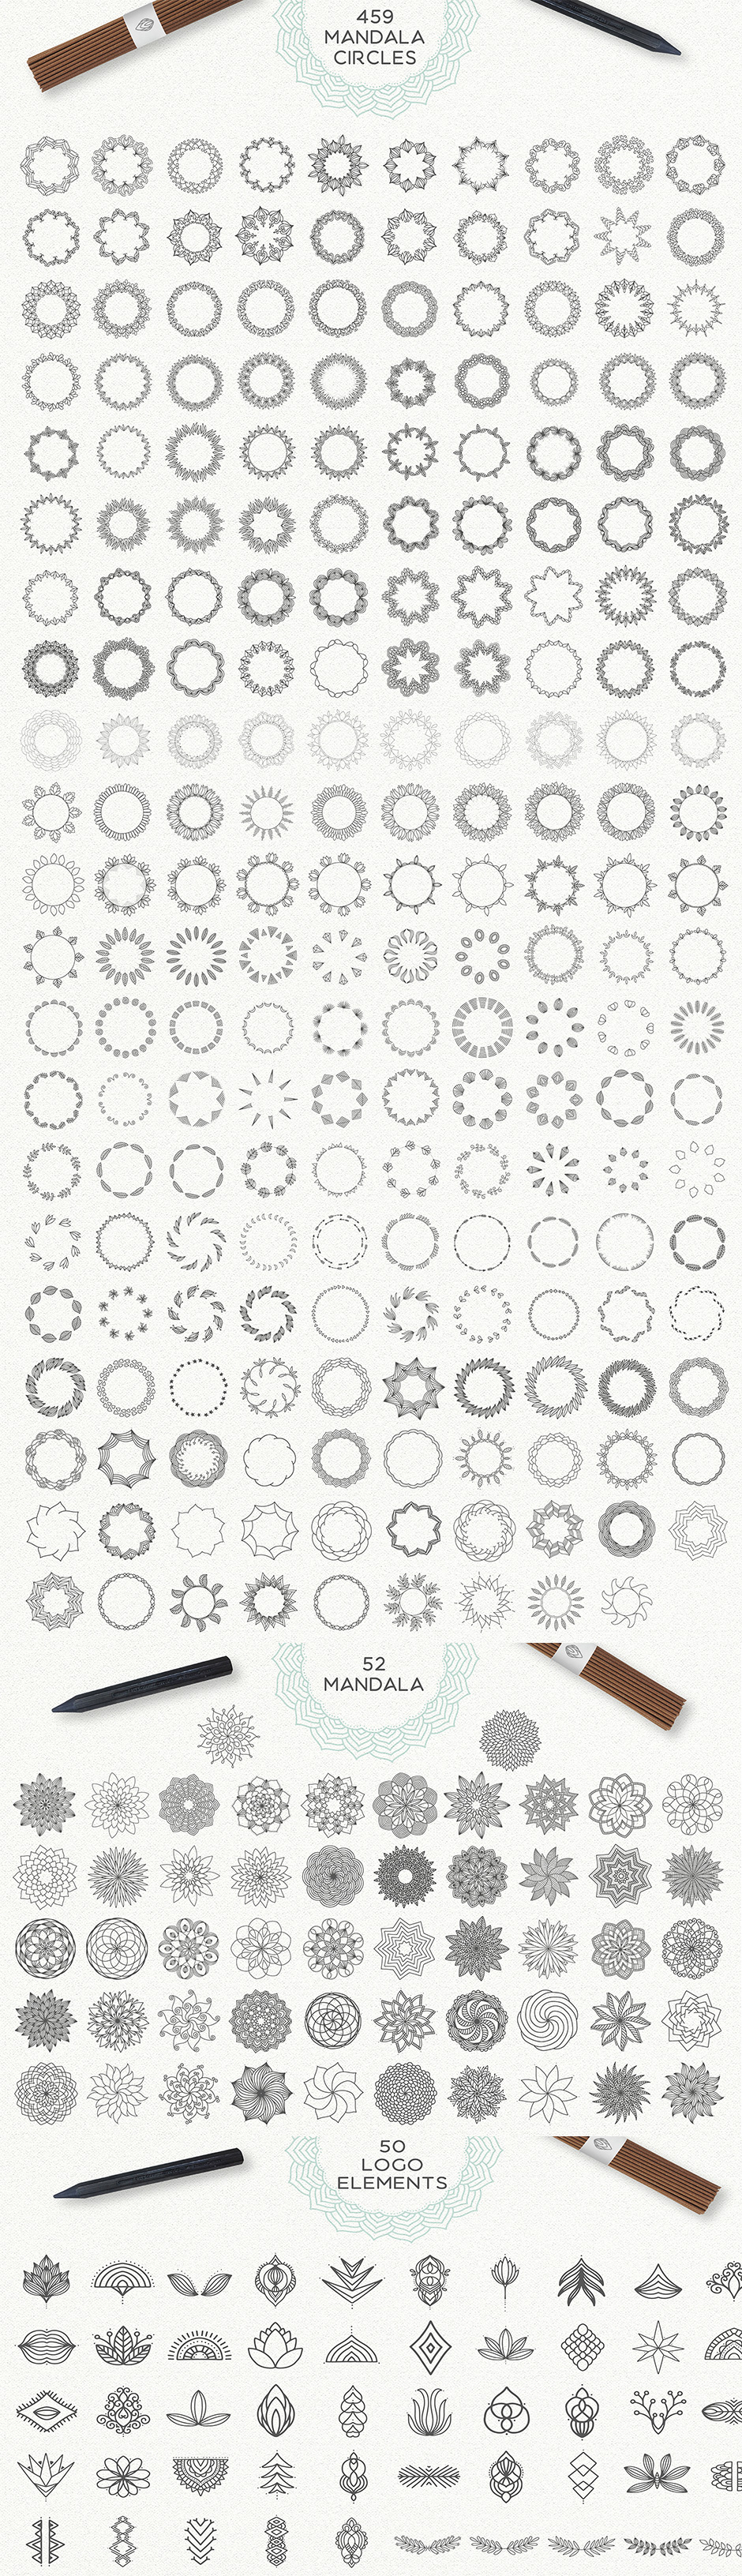 Mandala Vektor Illustrationen zum Download